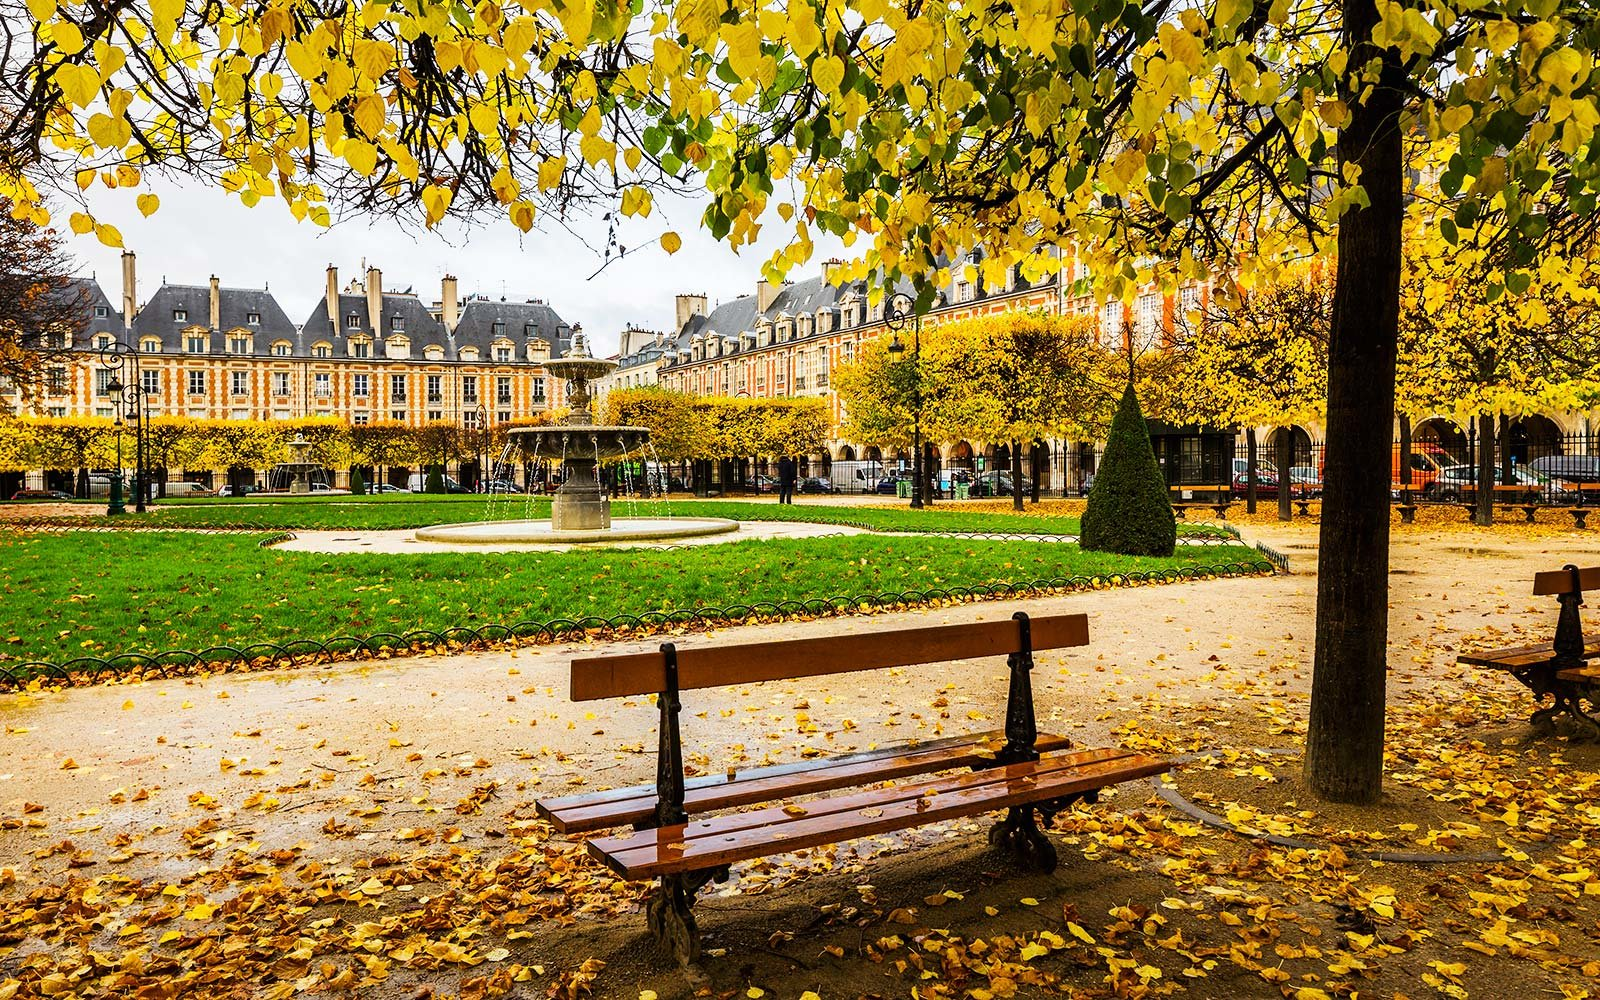 France, Île-de-France, Paris . Le Marais, Place (square) des Vosges in autumn (fall)